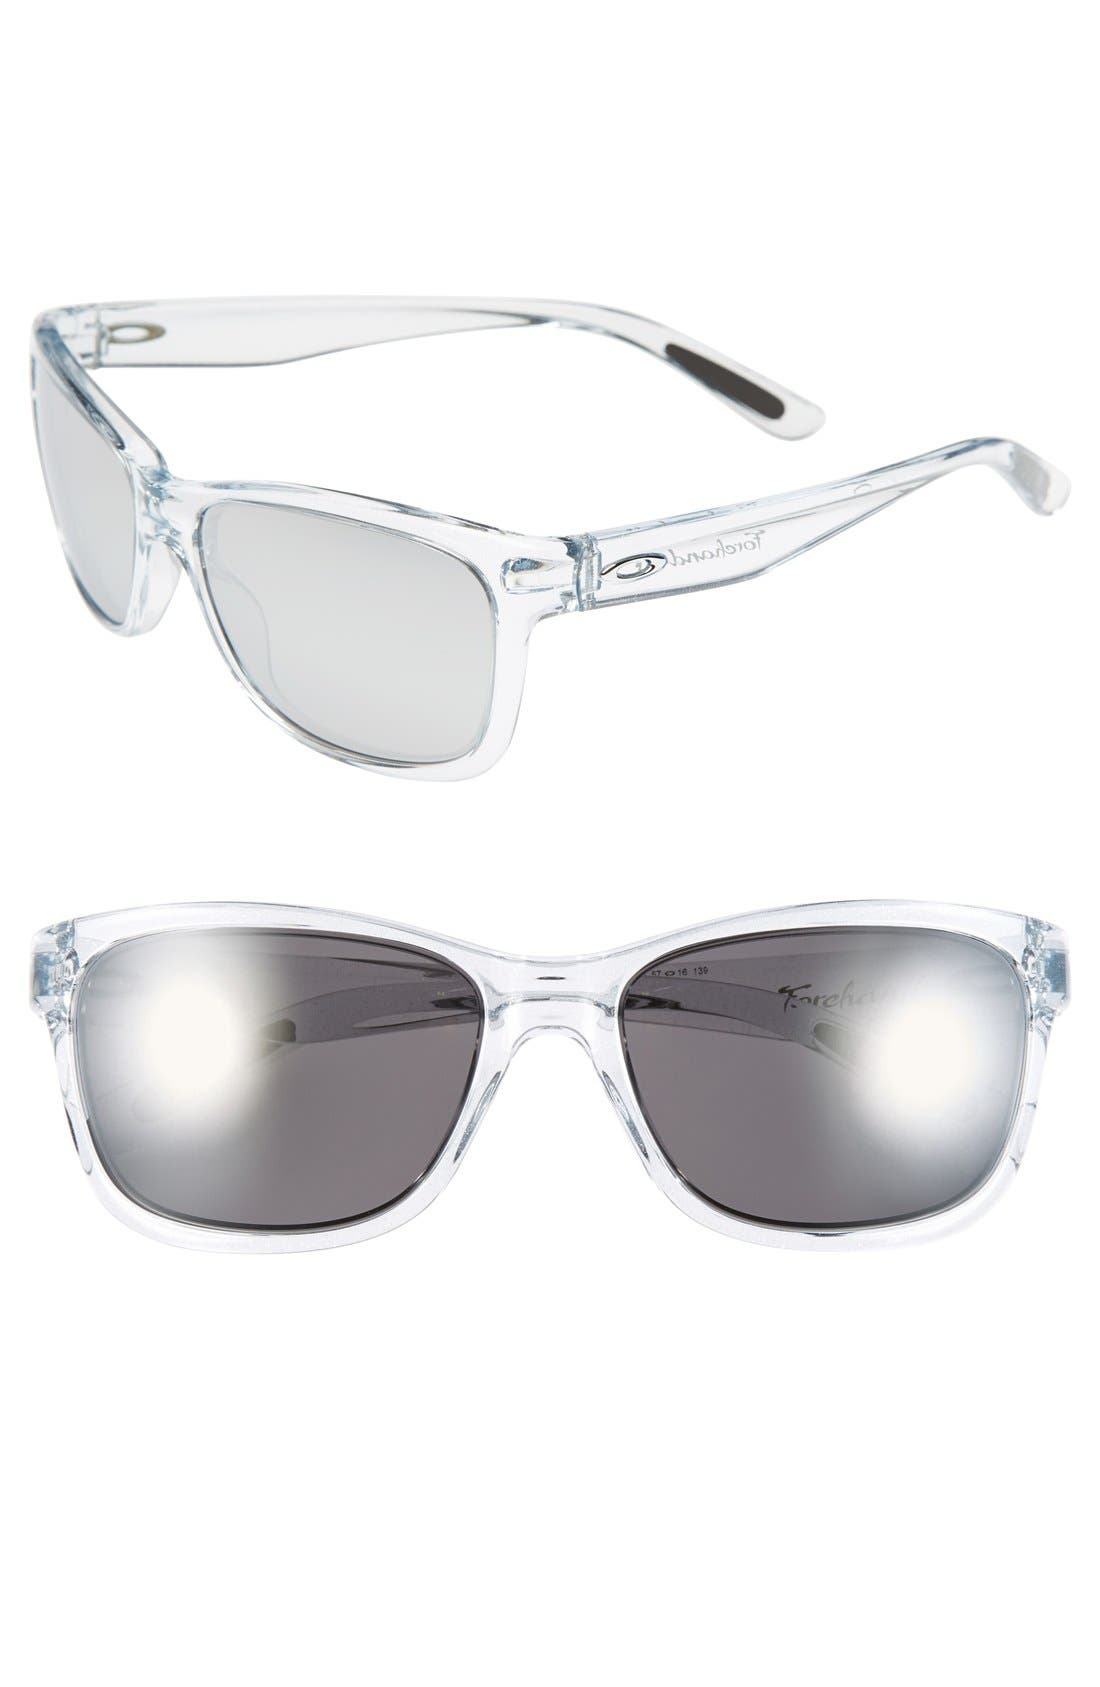 Main Image - Oakley 'Forehand' 57mm Sunglasses